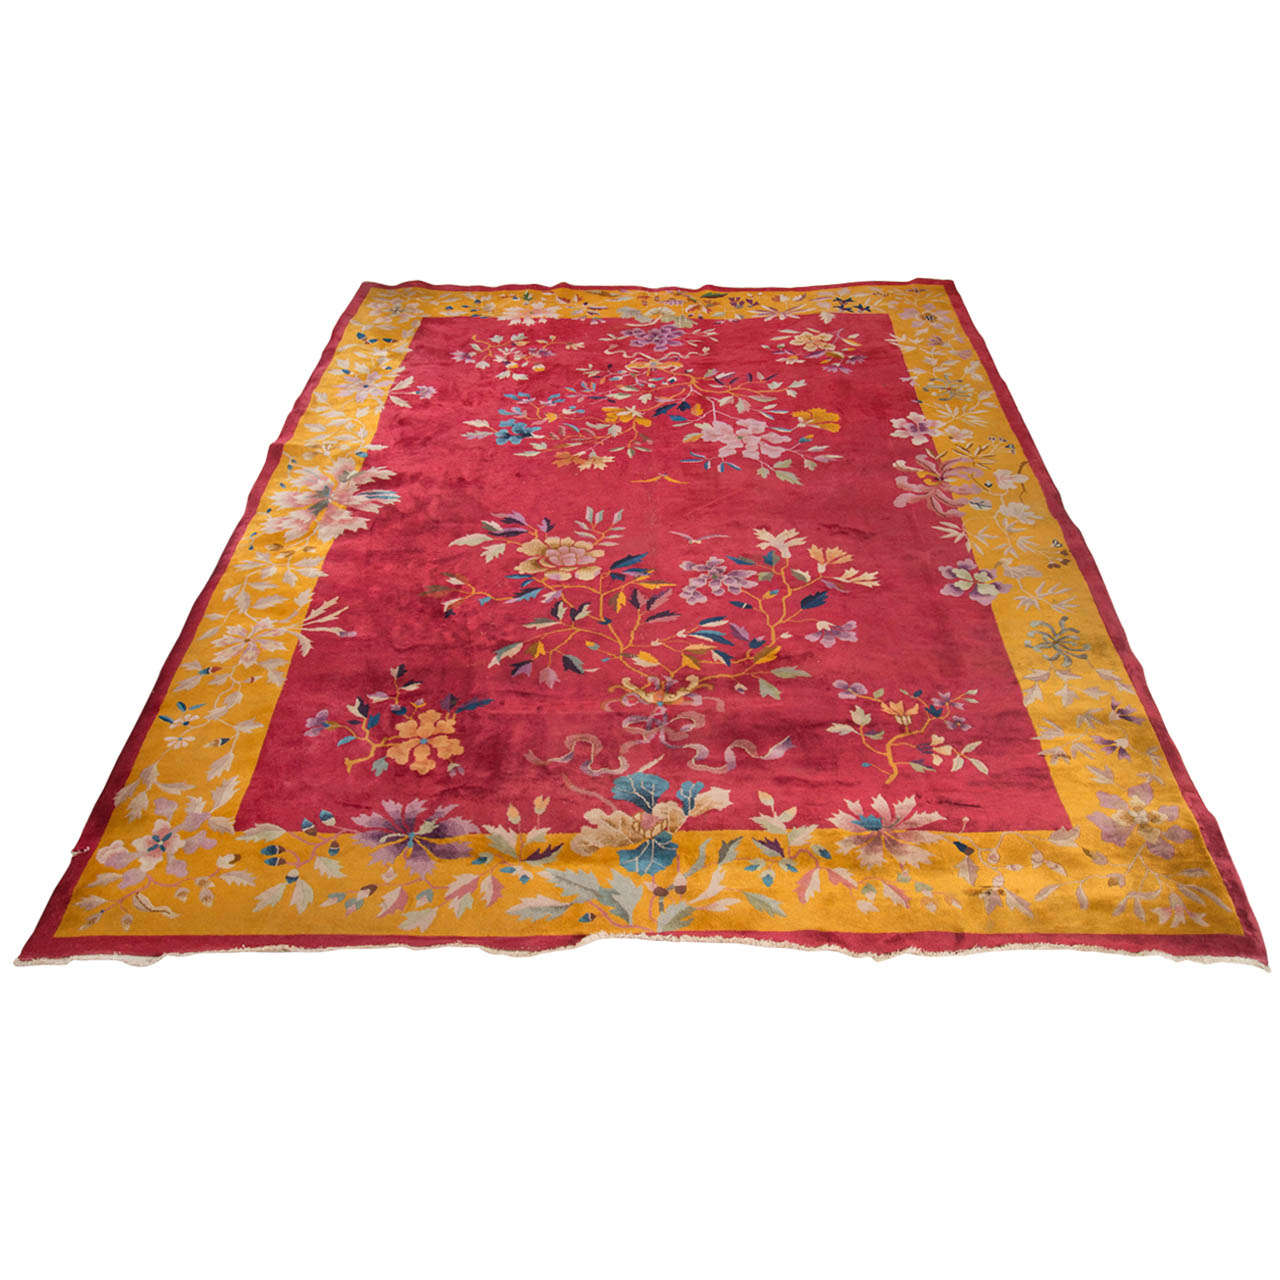 Chinese Art Deco Rug with Stylized Foliage and Floral Design 1